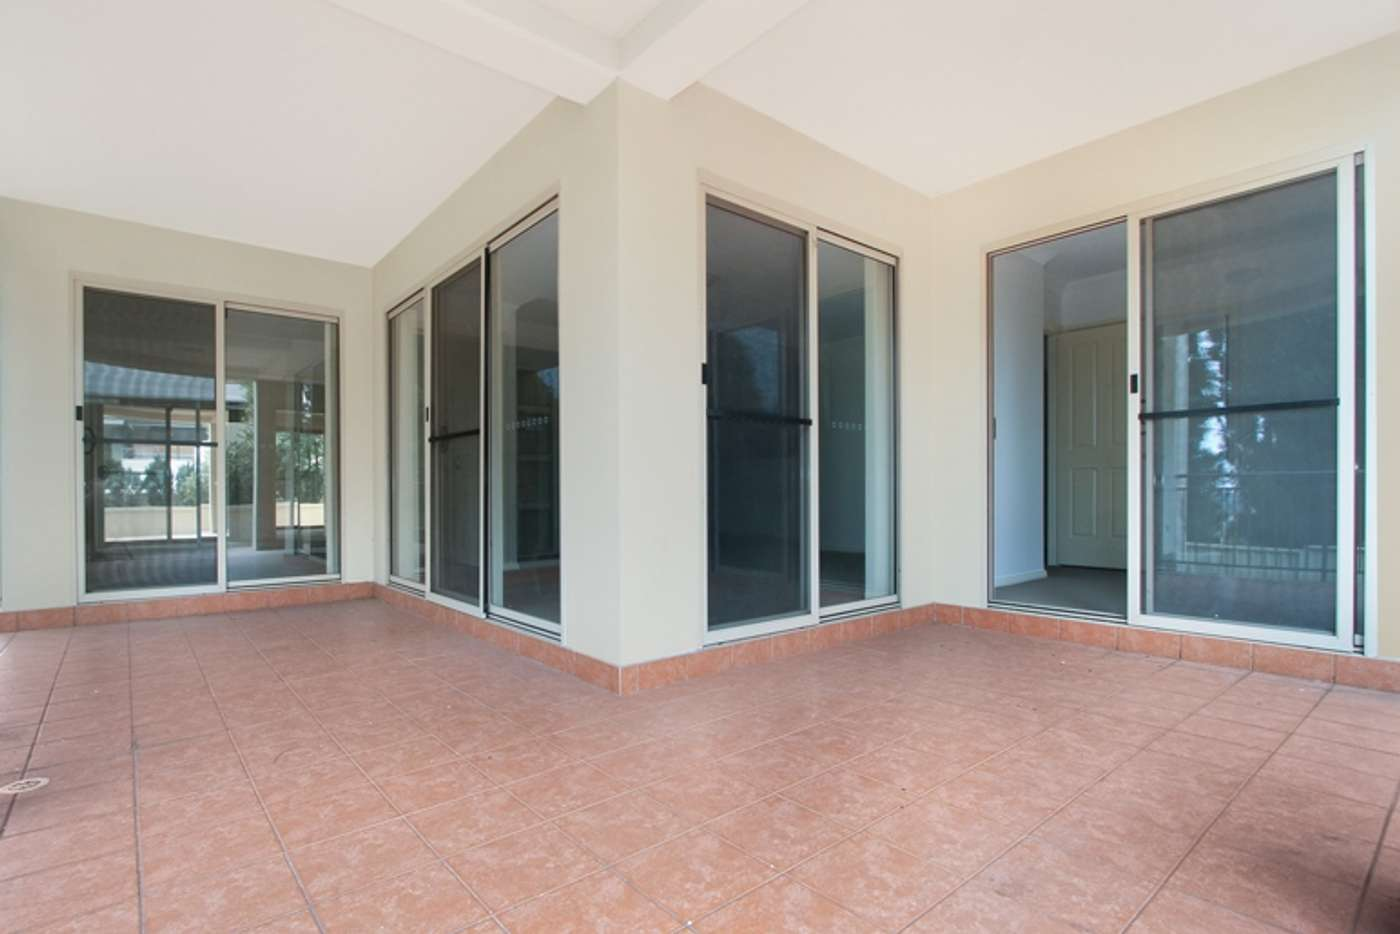 Seventh view of Homely apartment listing, 4/36-38 Loftus Street, Wollongong NSW 2500